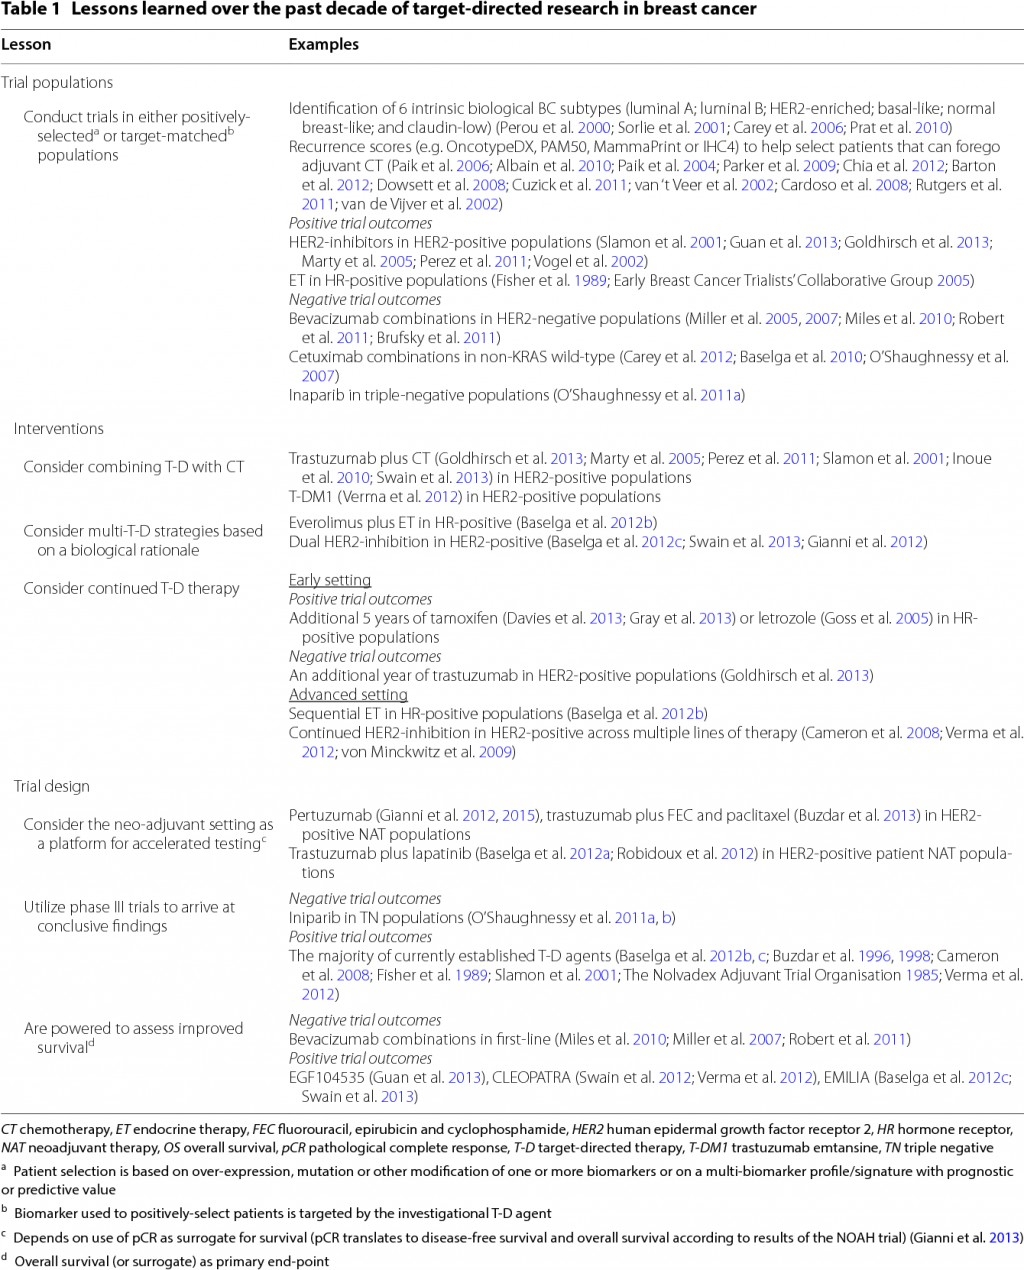 020 Table1 Breast Cancer Research Paper Phenomenal Example Large